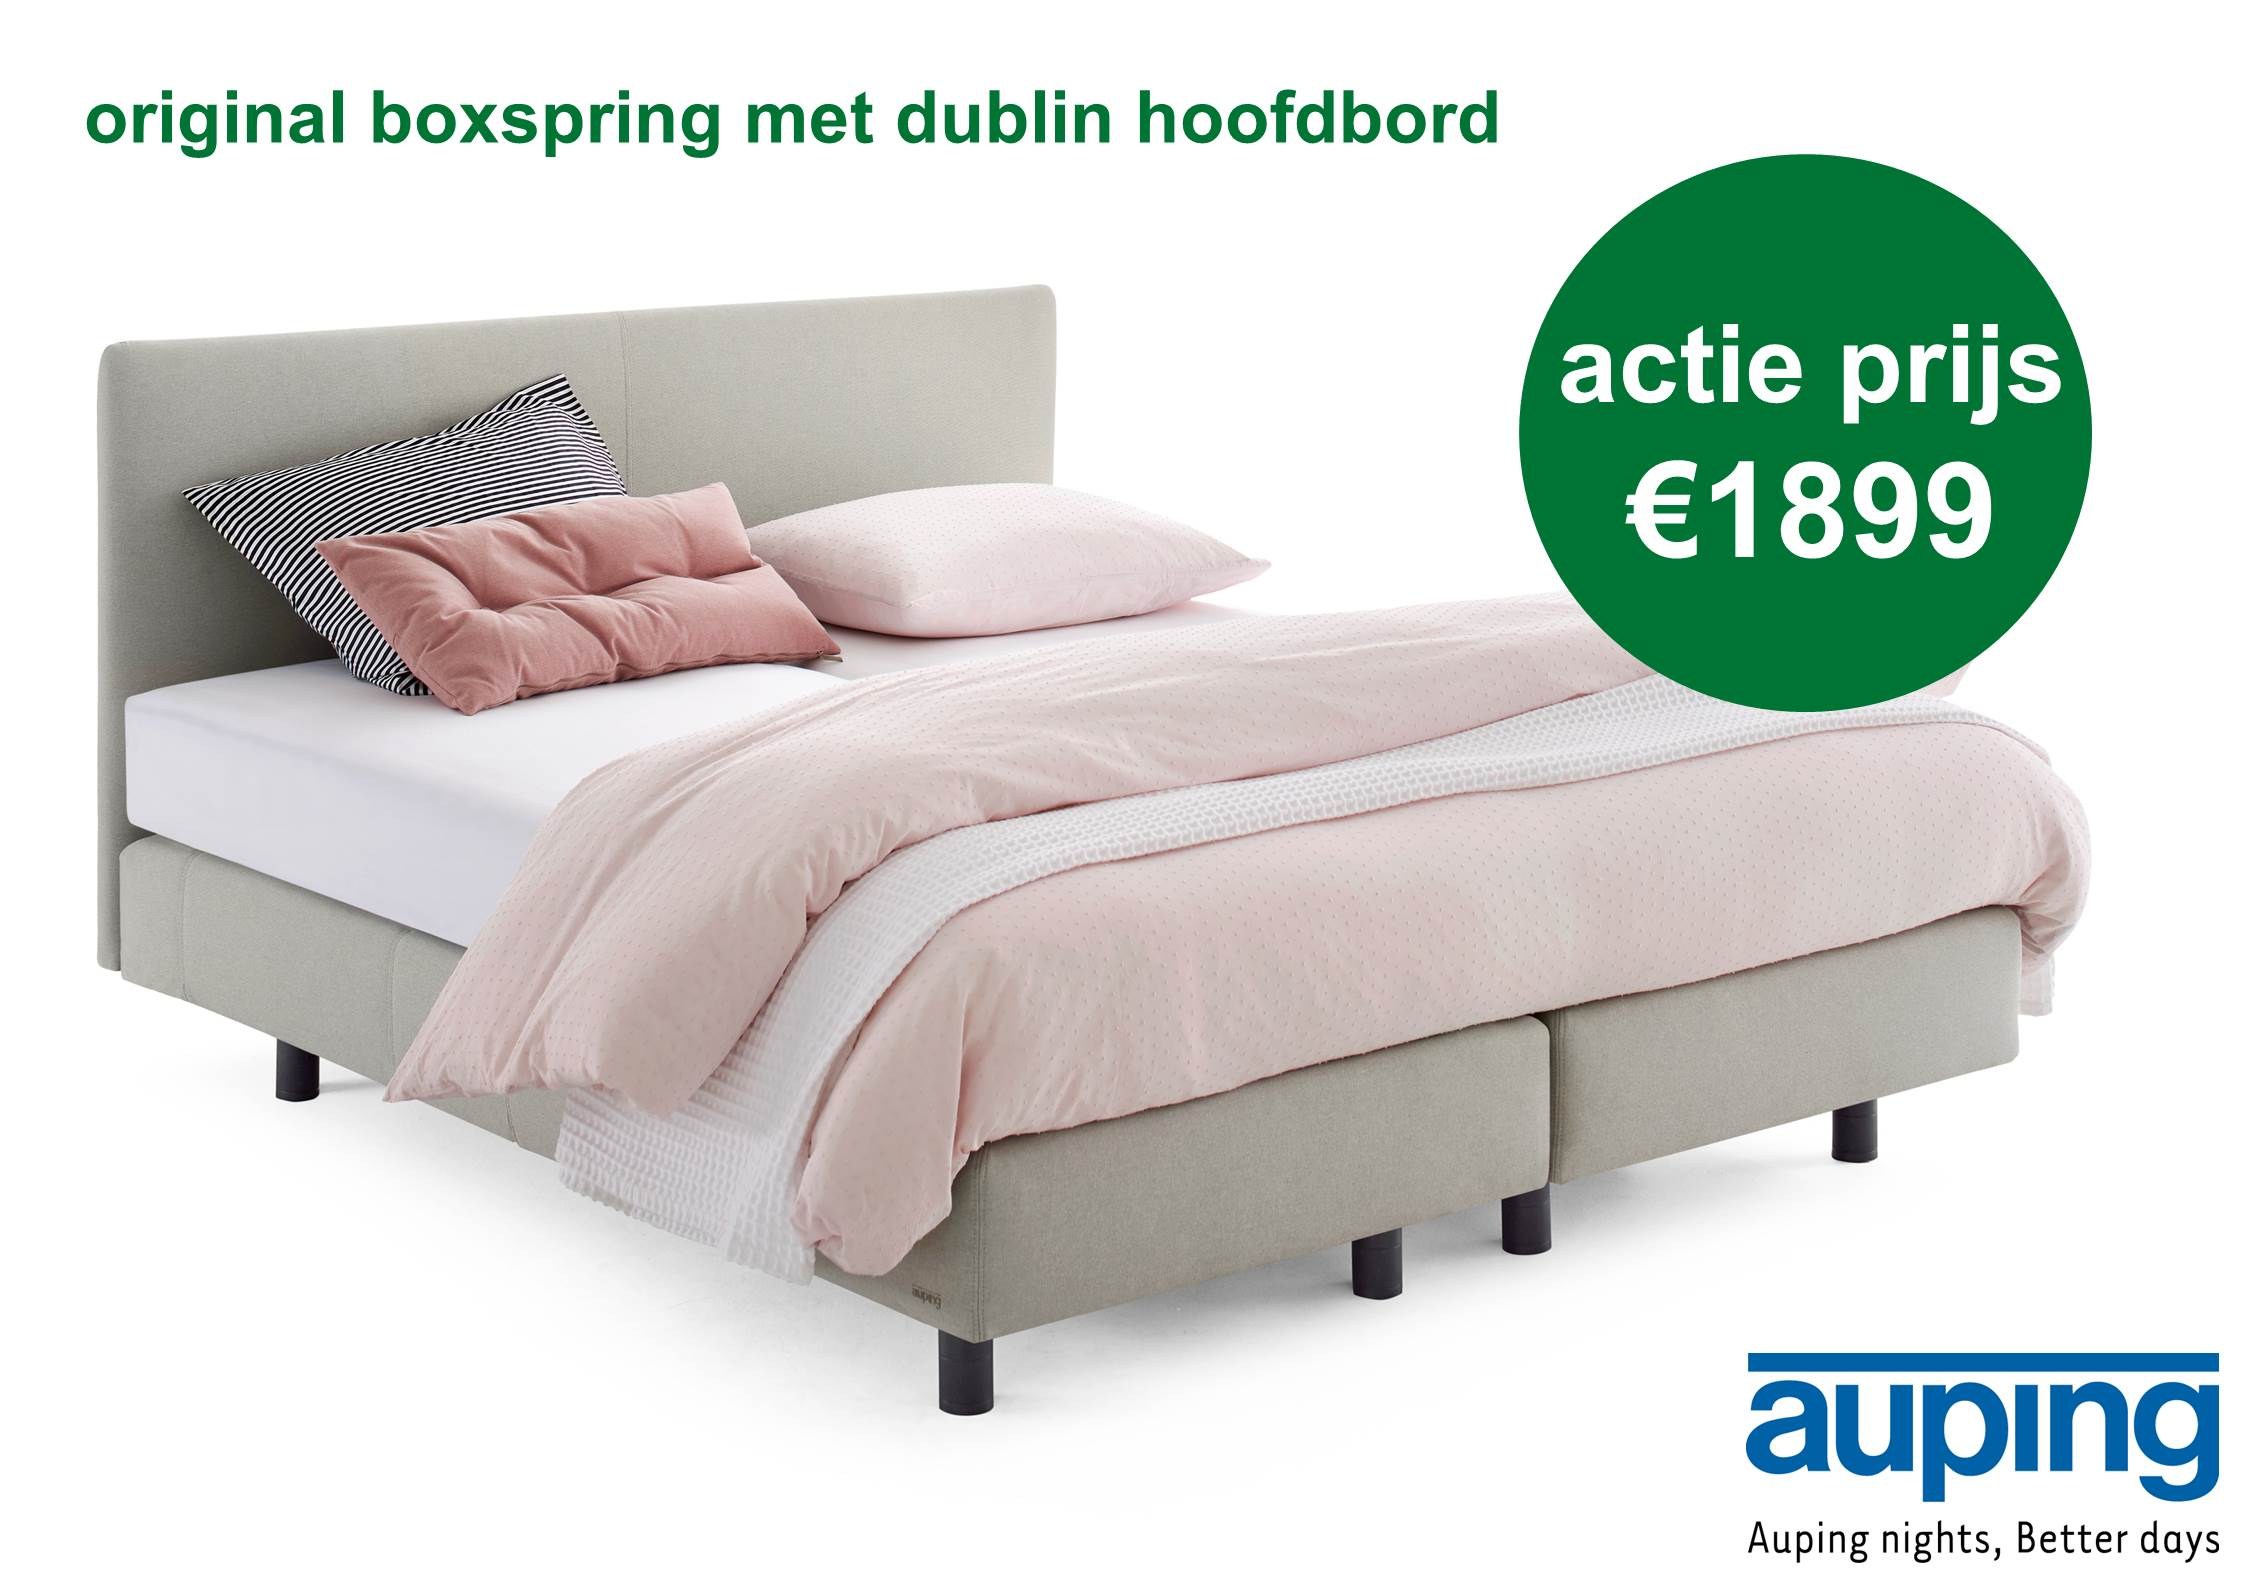 Auping Royal Hoofdbord.Auping Boxspring Matras